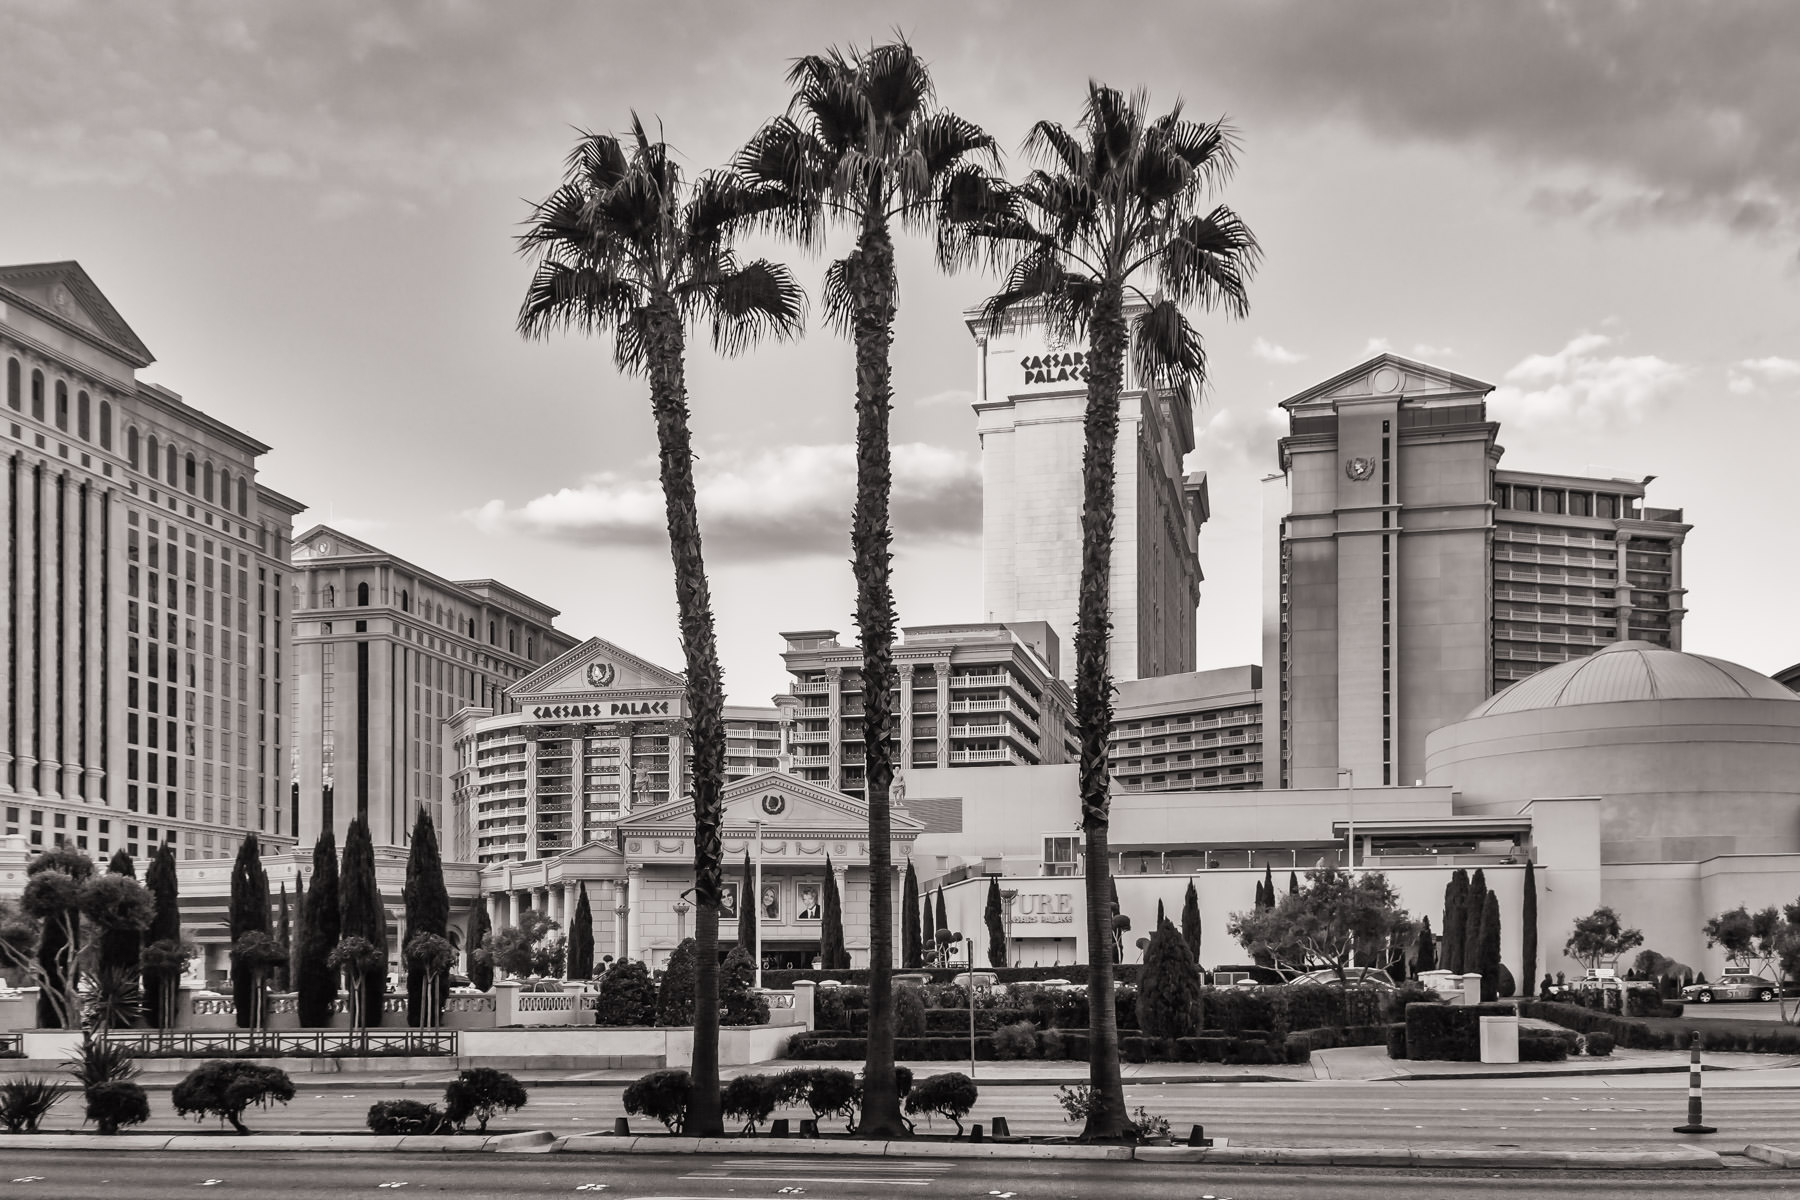 Three palm trees stand guard in front of Caesars Palace, Las Vegas.